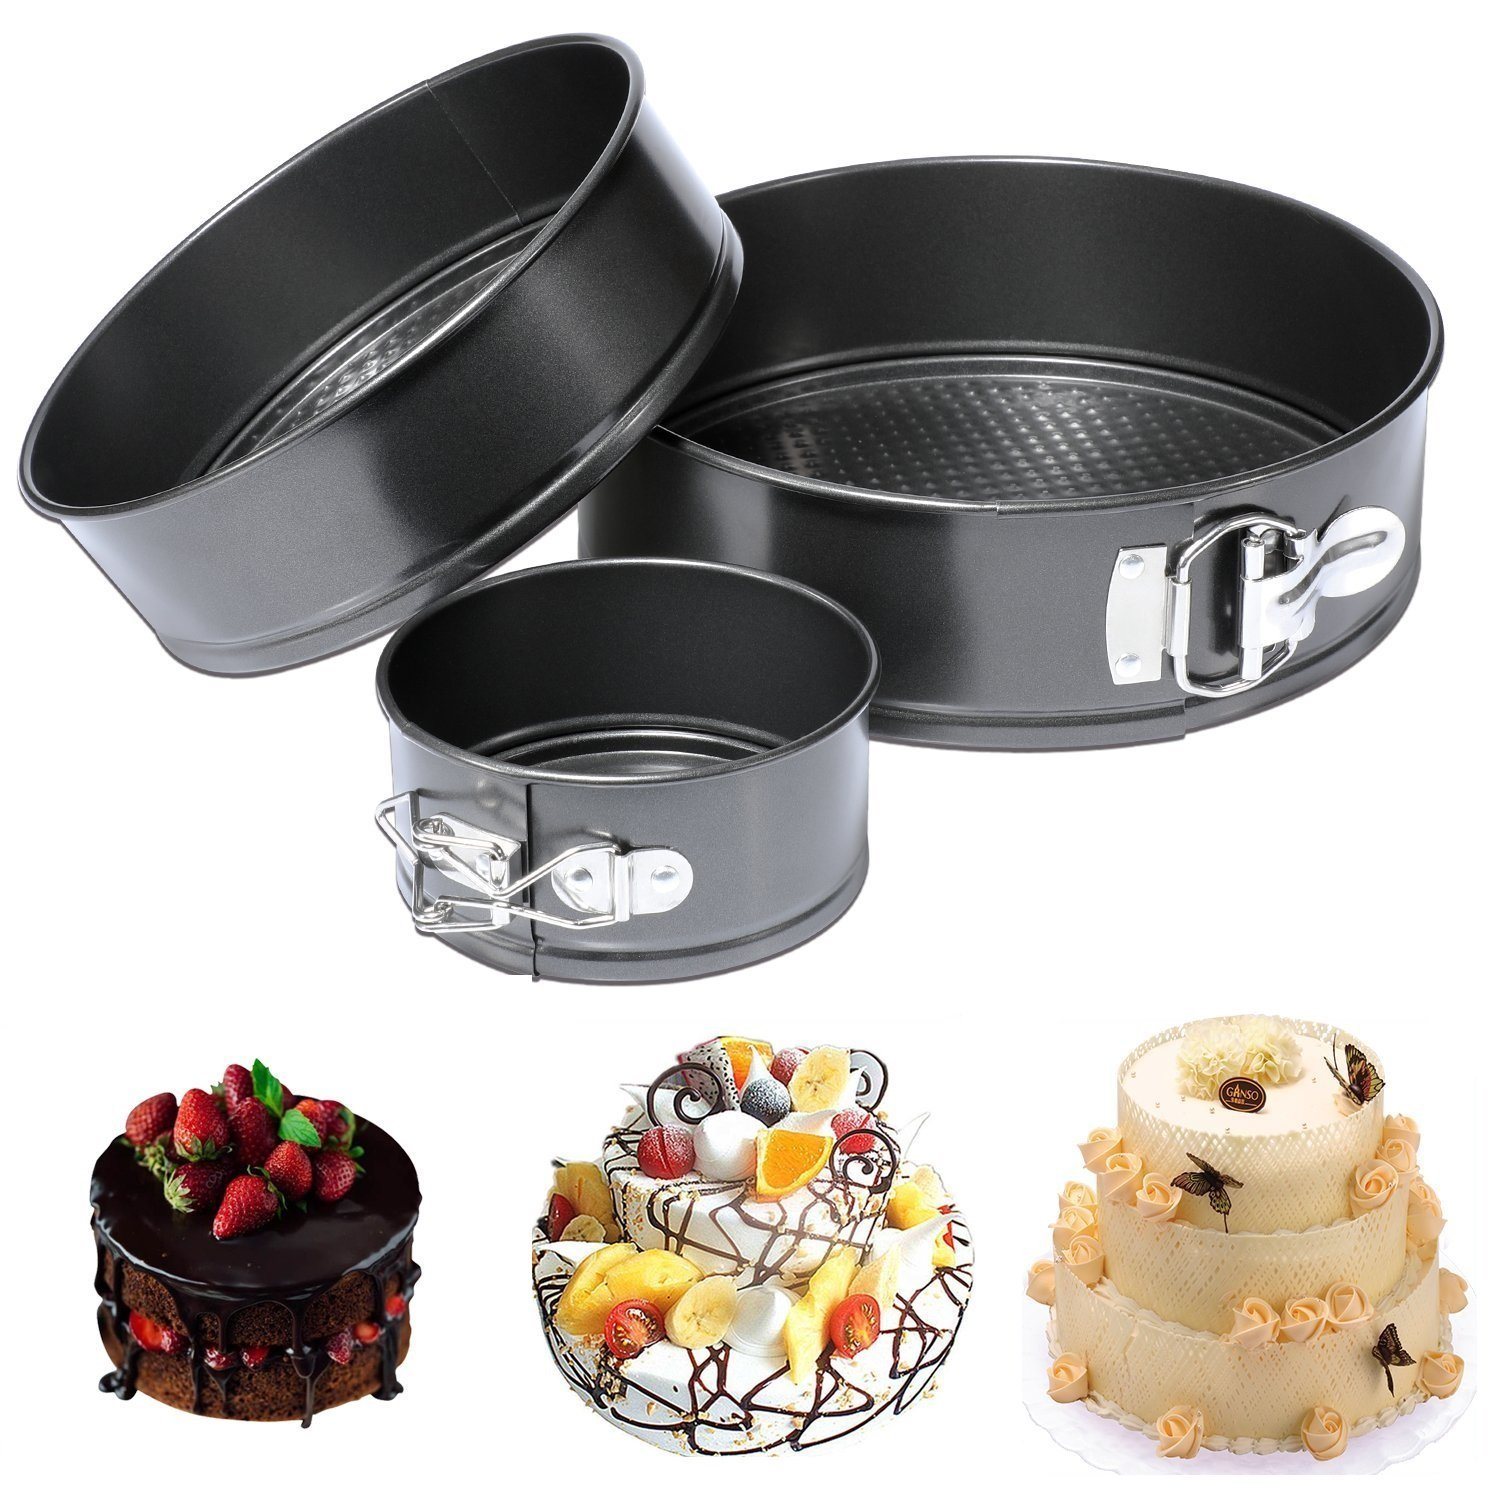 CESHUMD Springform Pan Set von 3 Antihaft-Cheesecake Pan ...